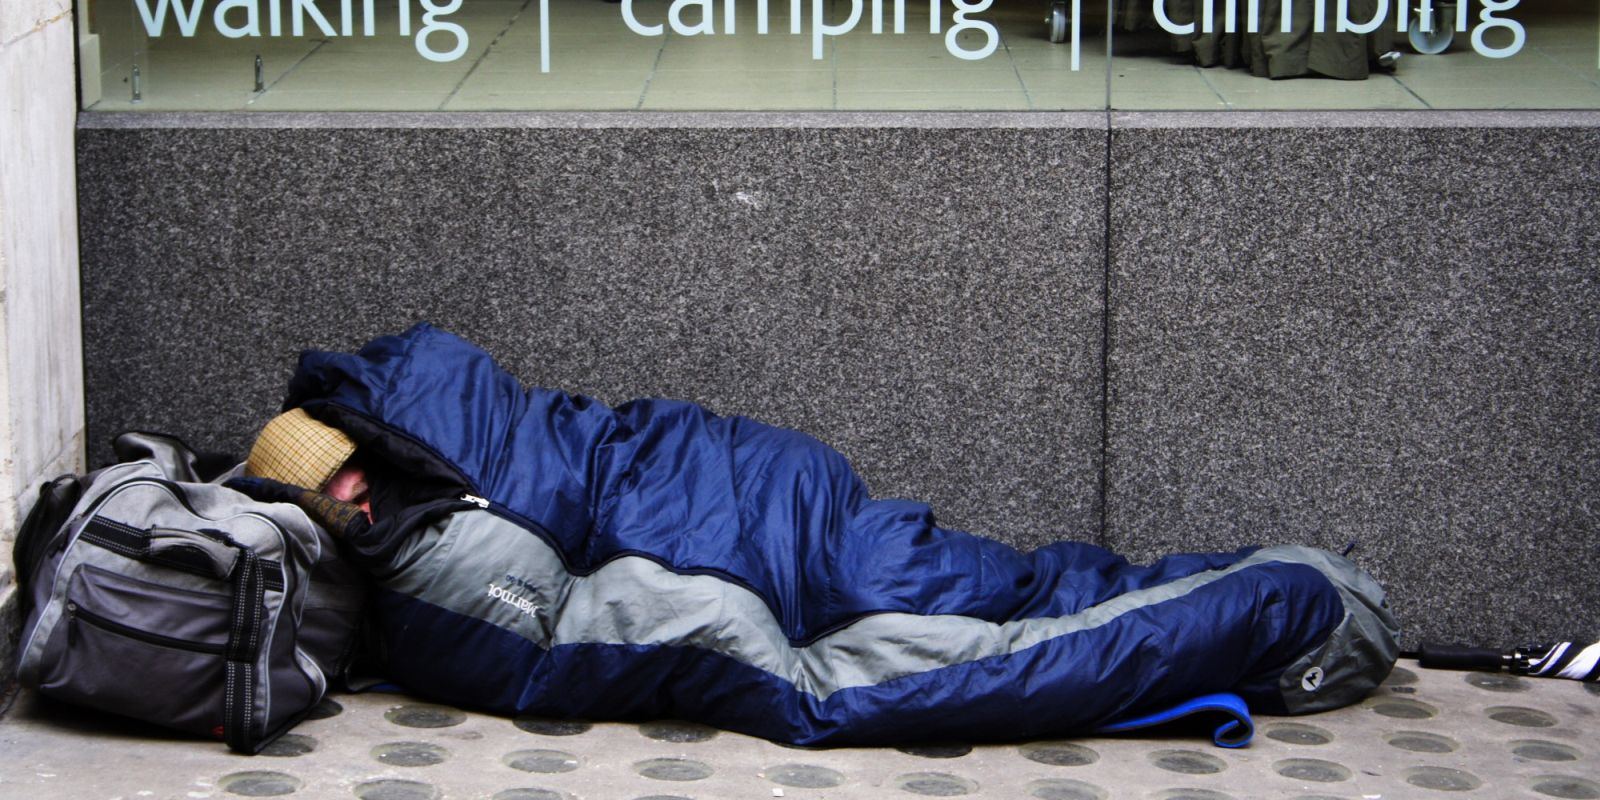 Project Bivouac Emergency Crisis Shelters For The Homeless